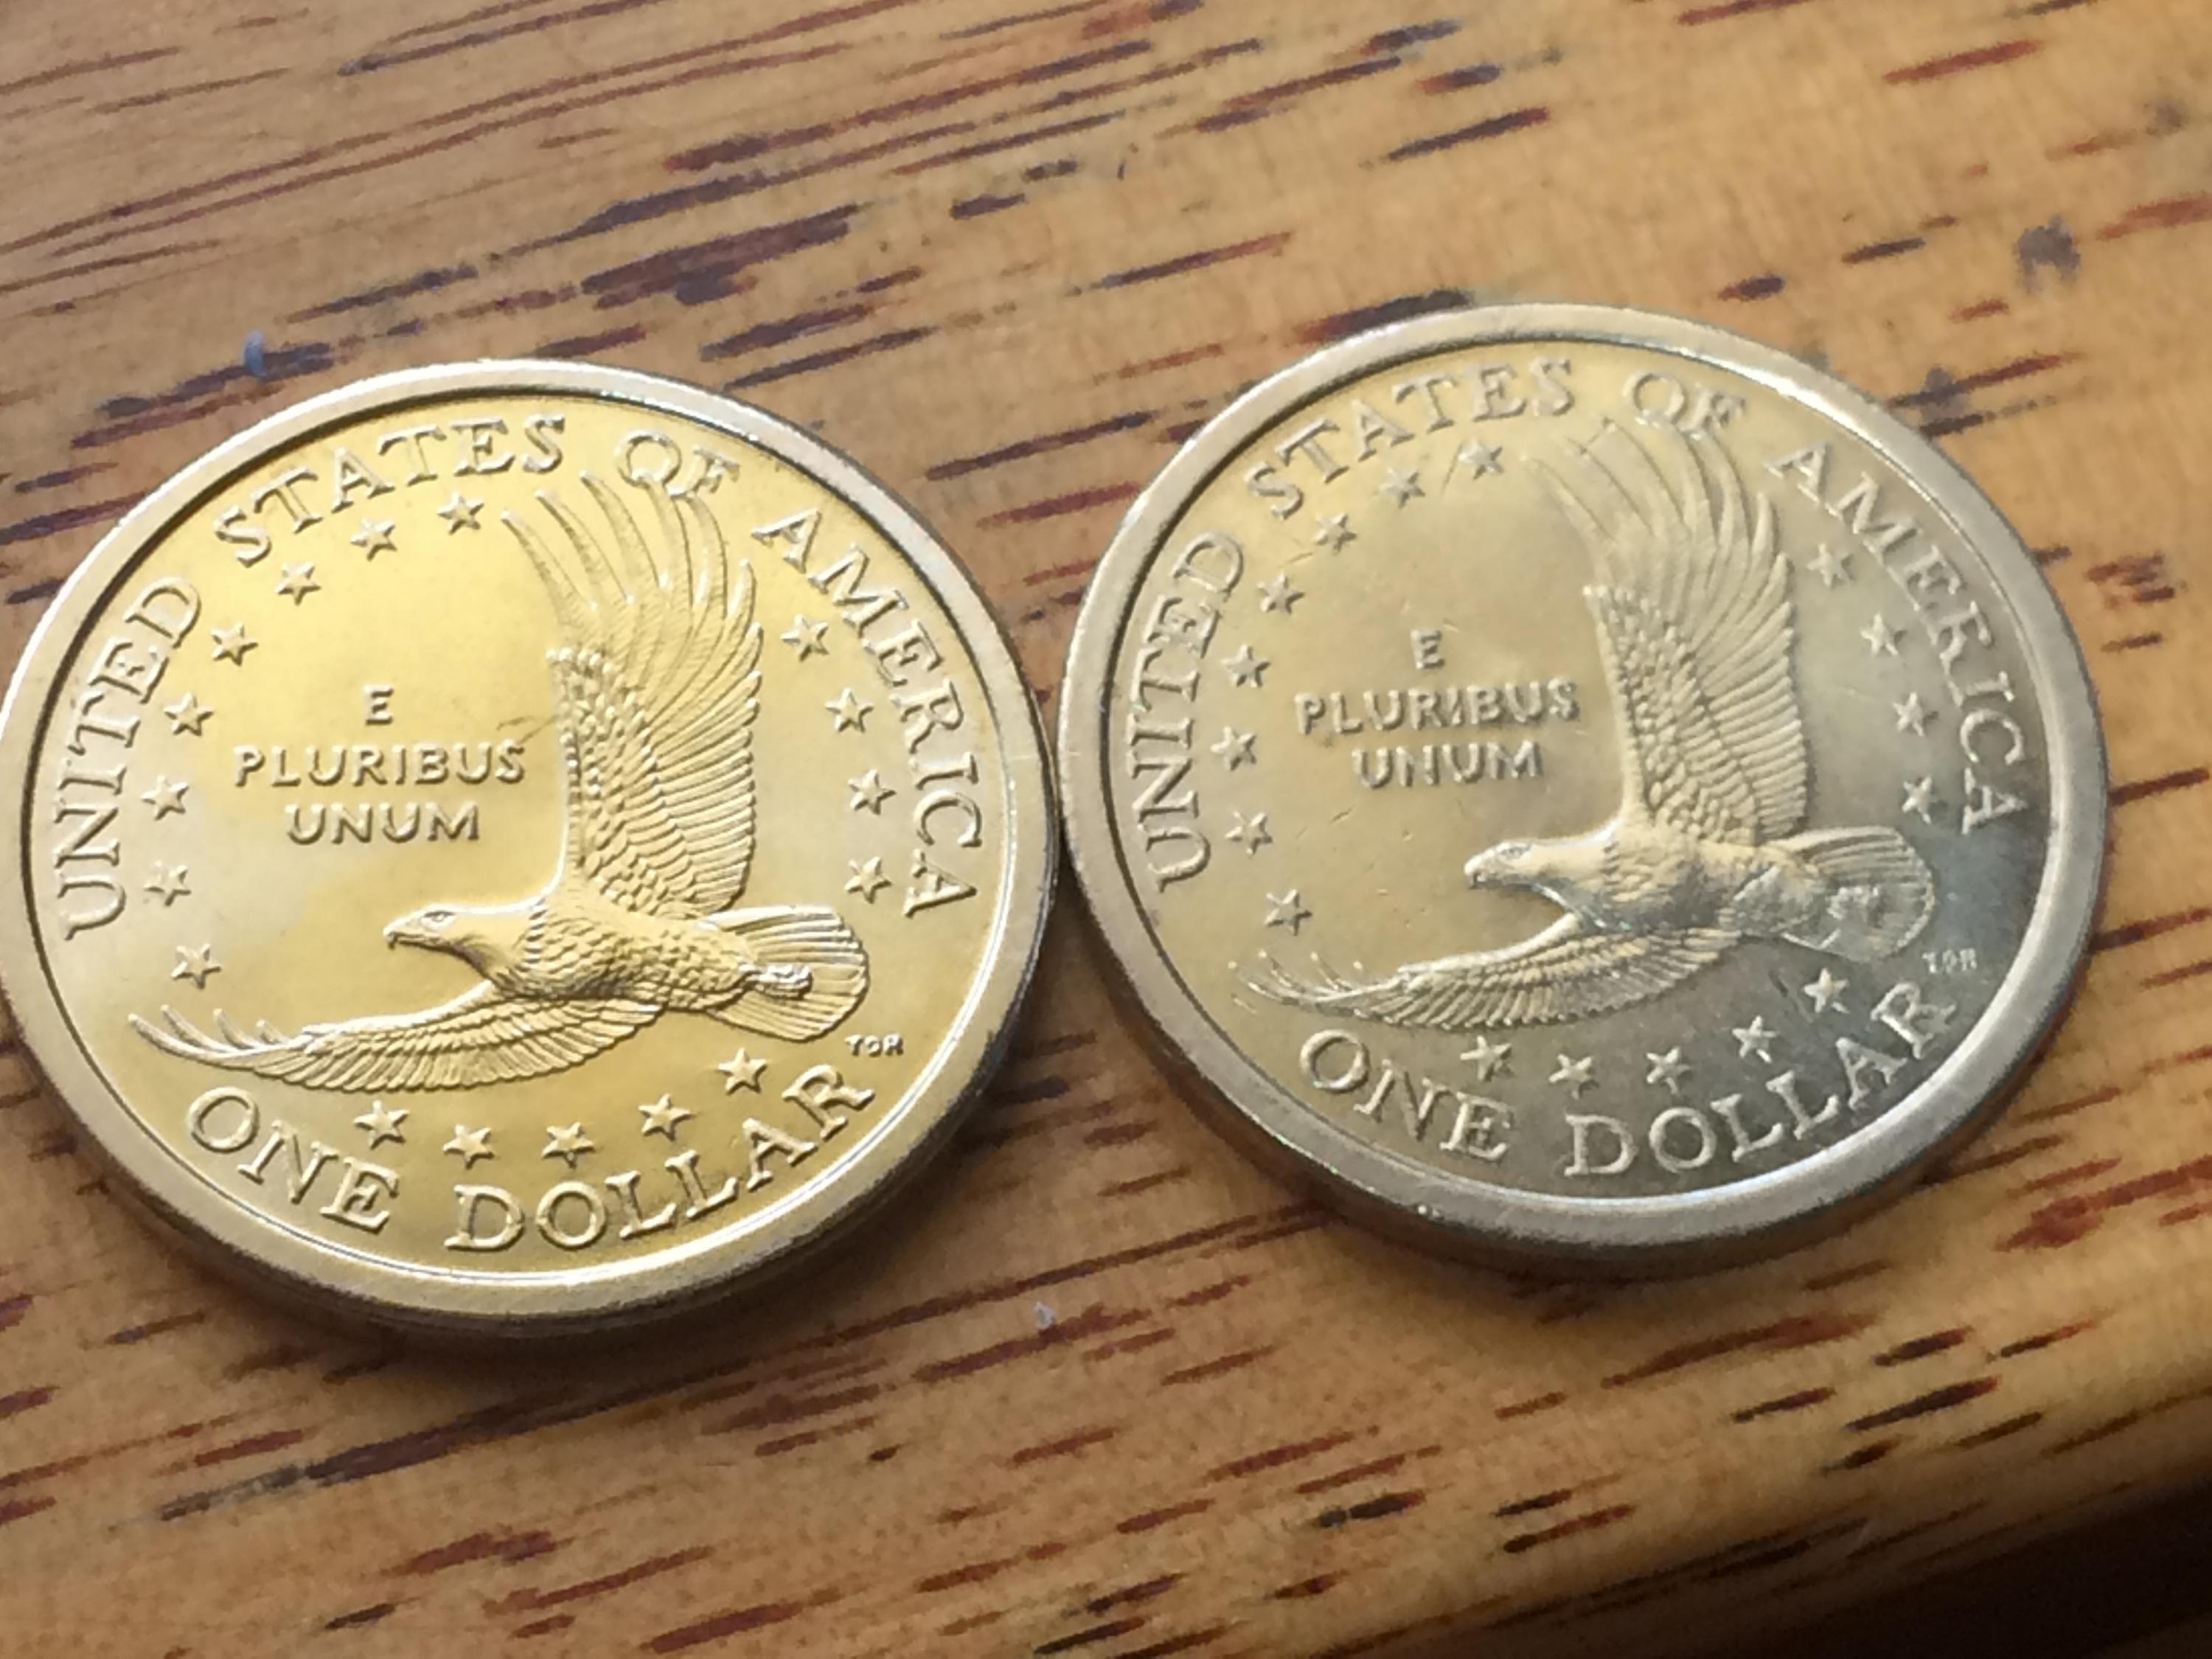 Sacagawea coin with edge lettering value